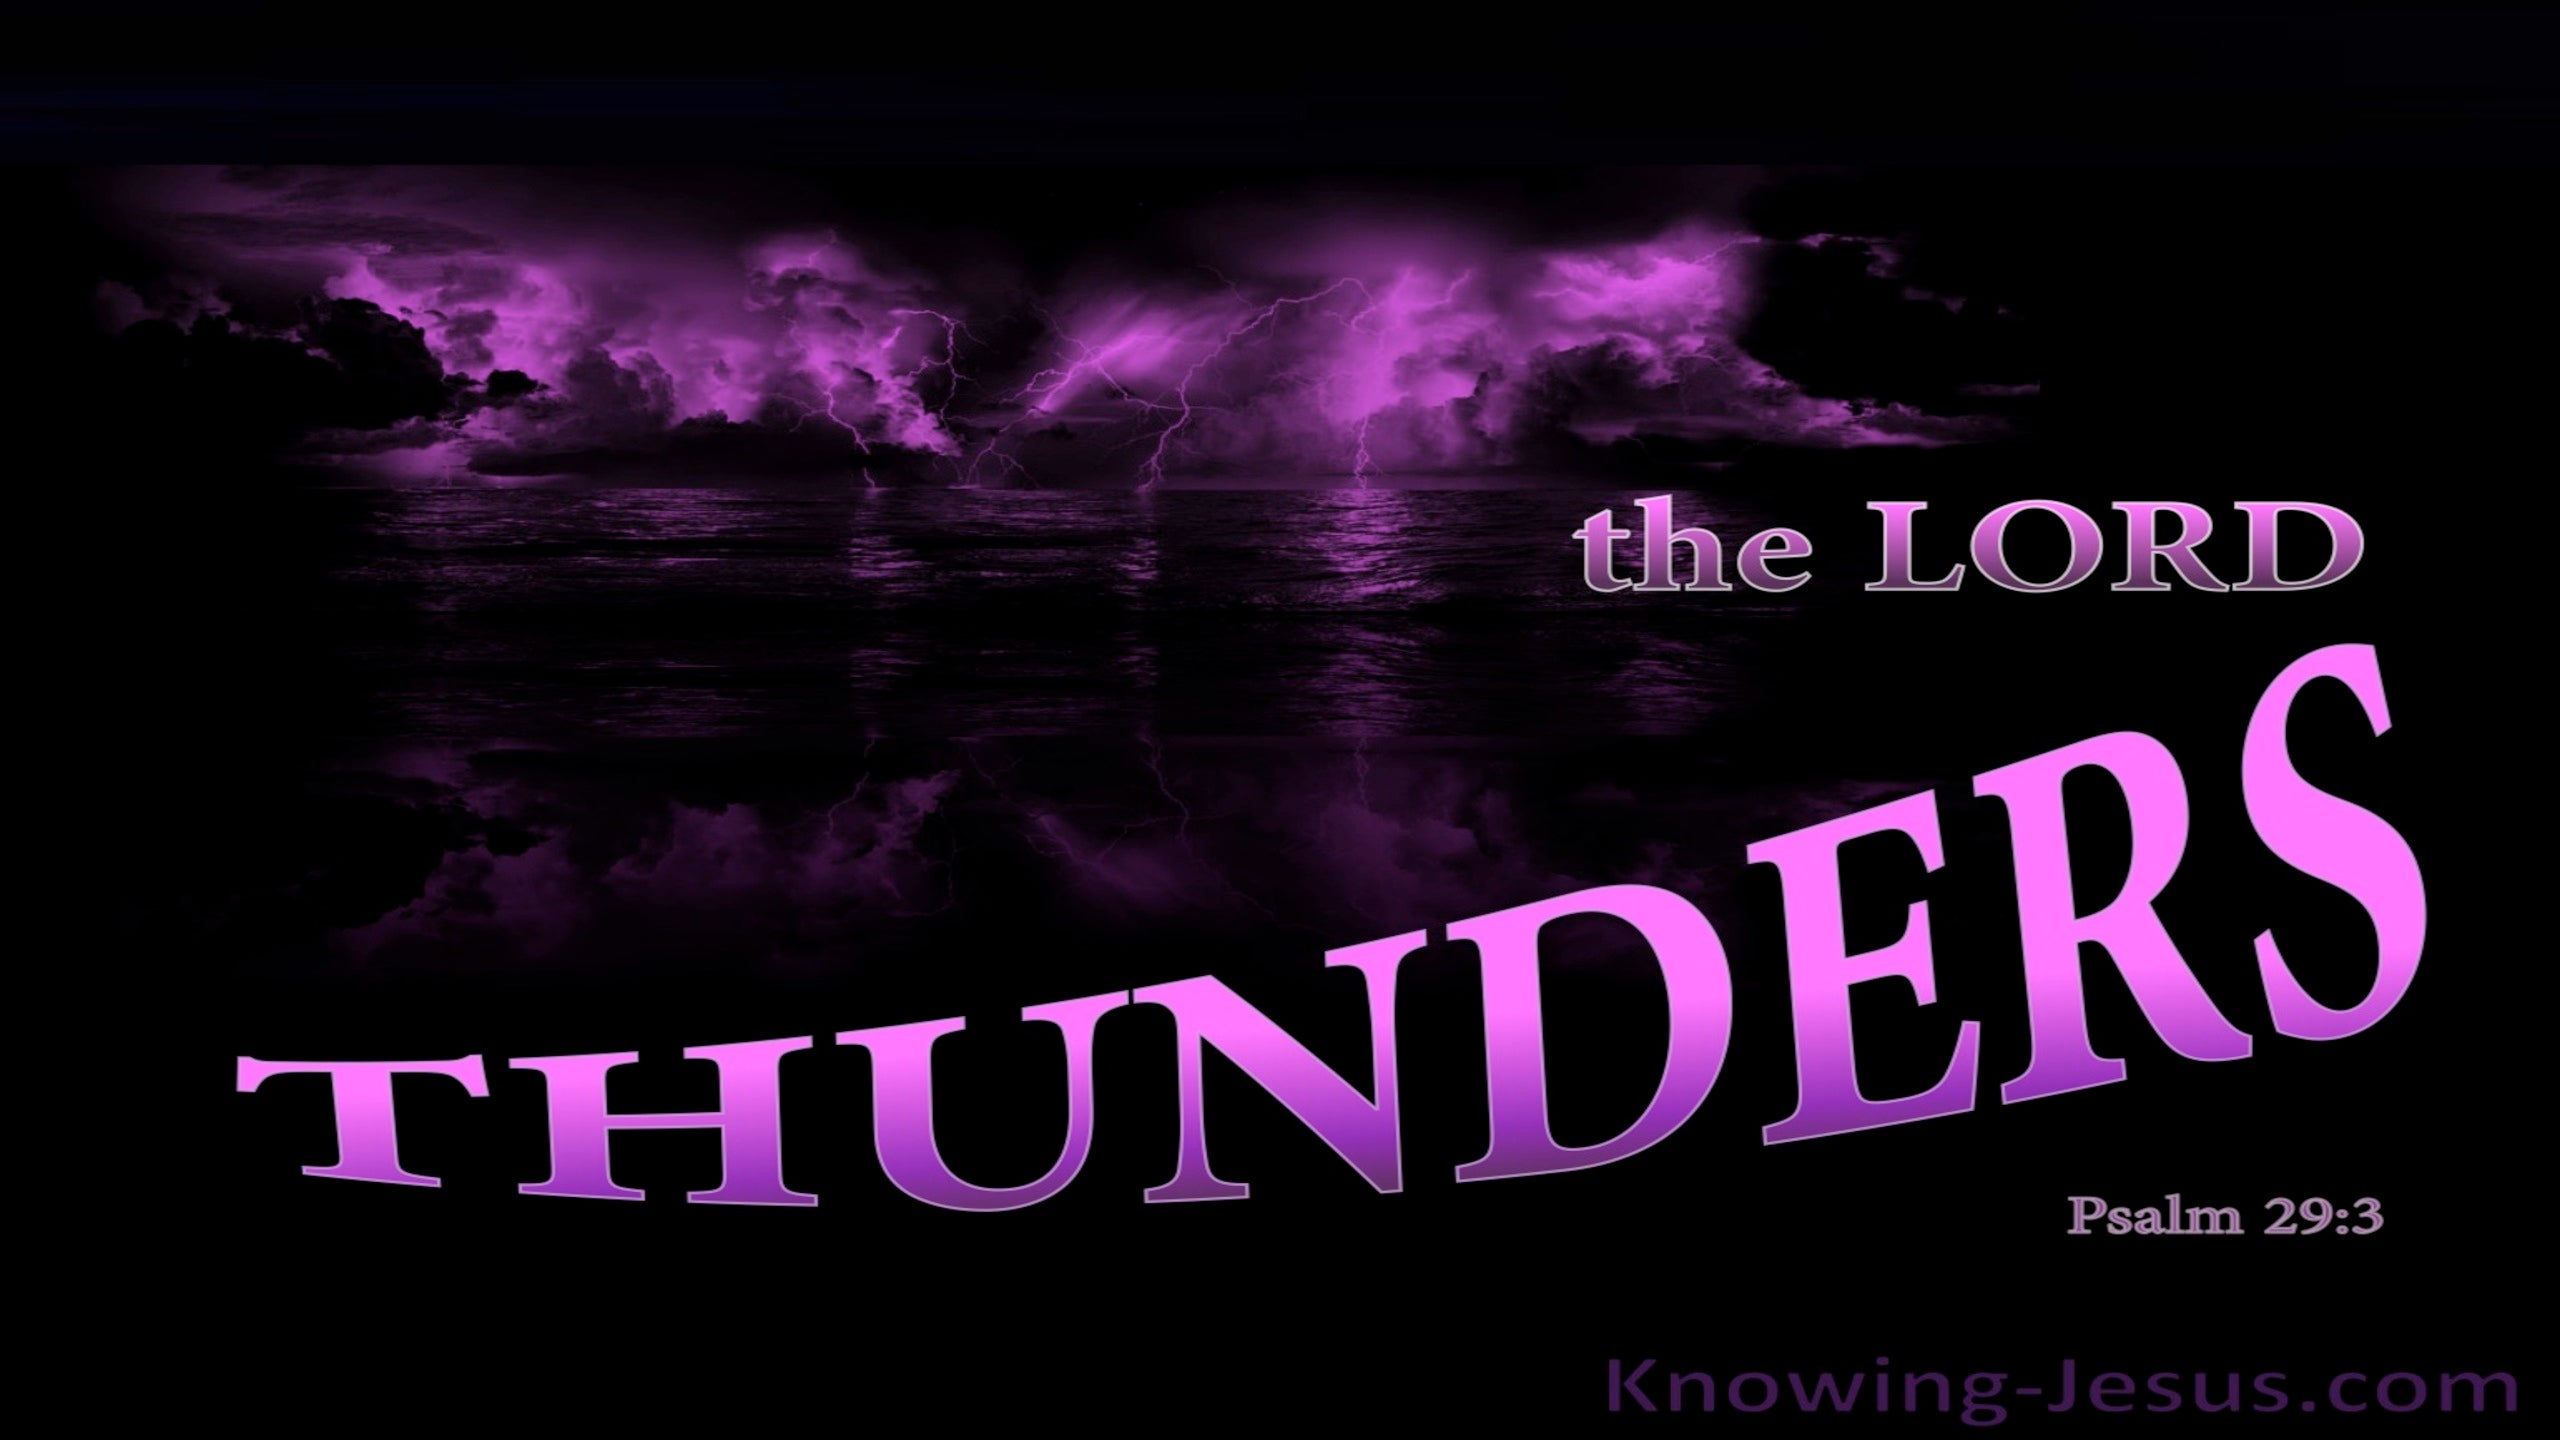 Psalm 29:3 The Voice Of The Lord Thunders (purple)